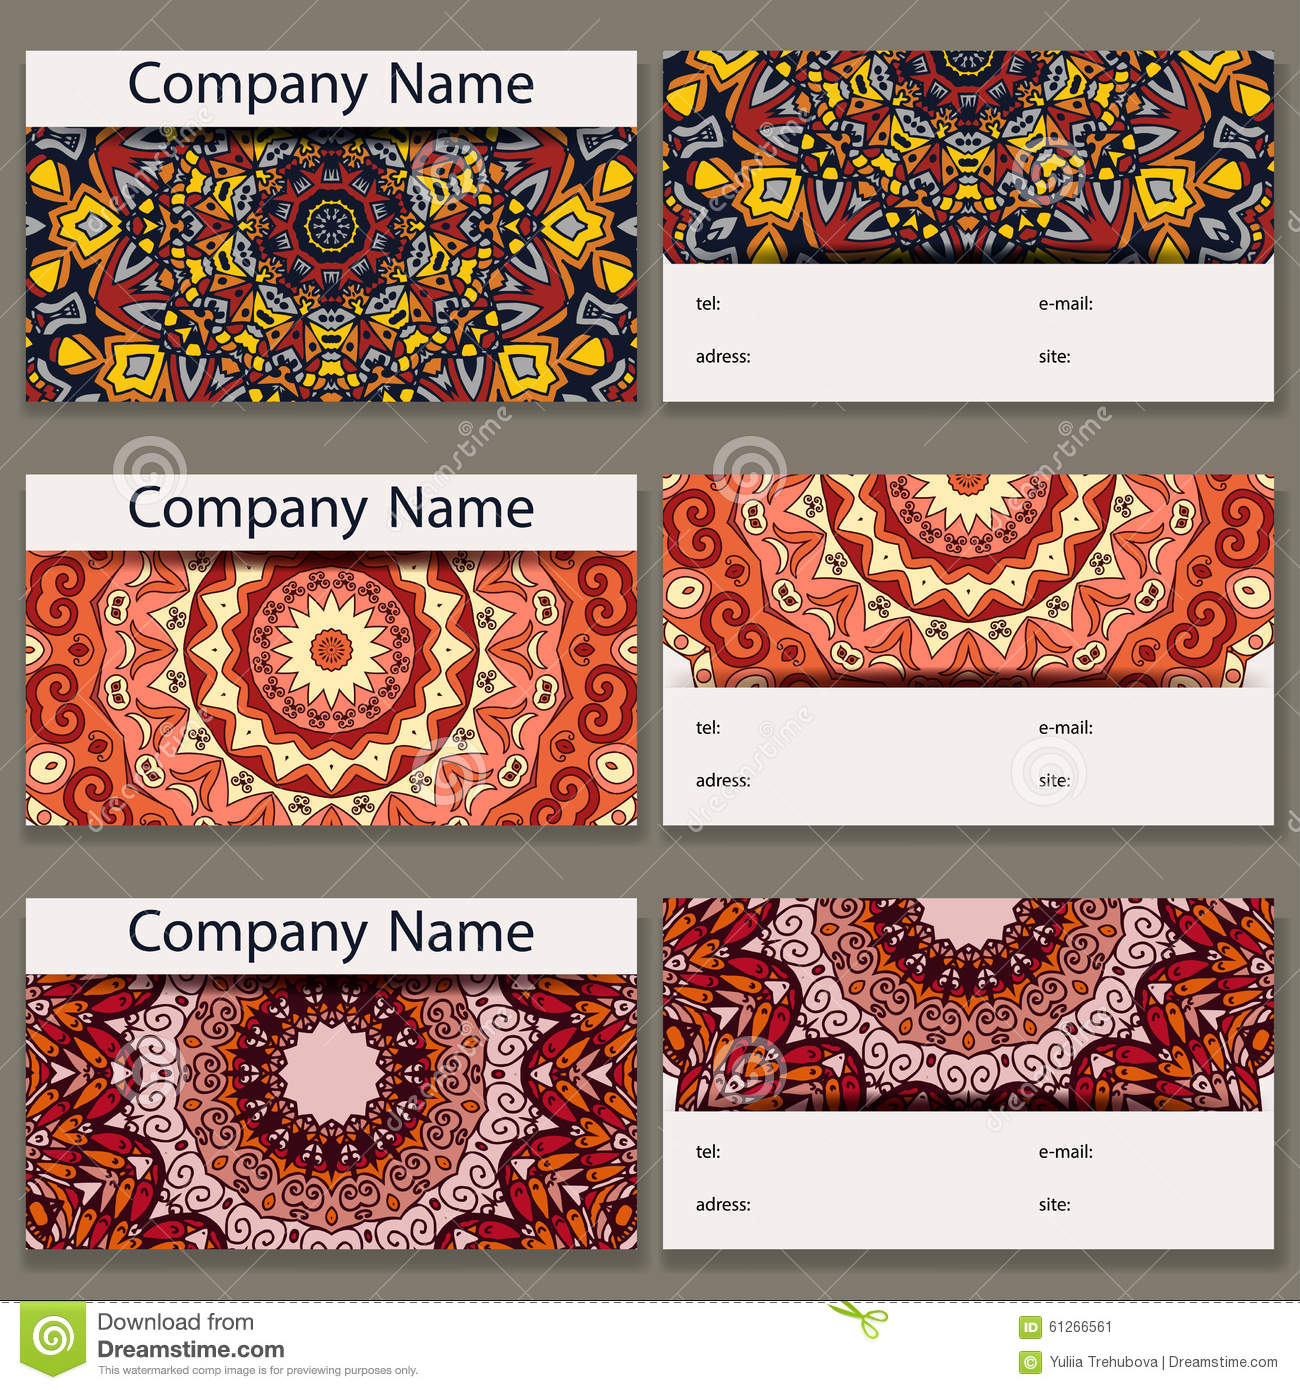 Set of six business cards. Vintage pattern in retro style with mandala. Hand drawn Islam, Arabic, Indian, lace pattern